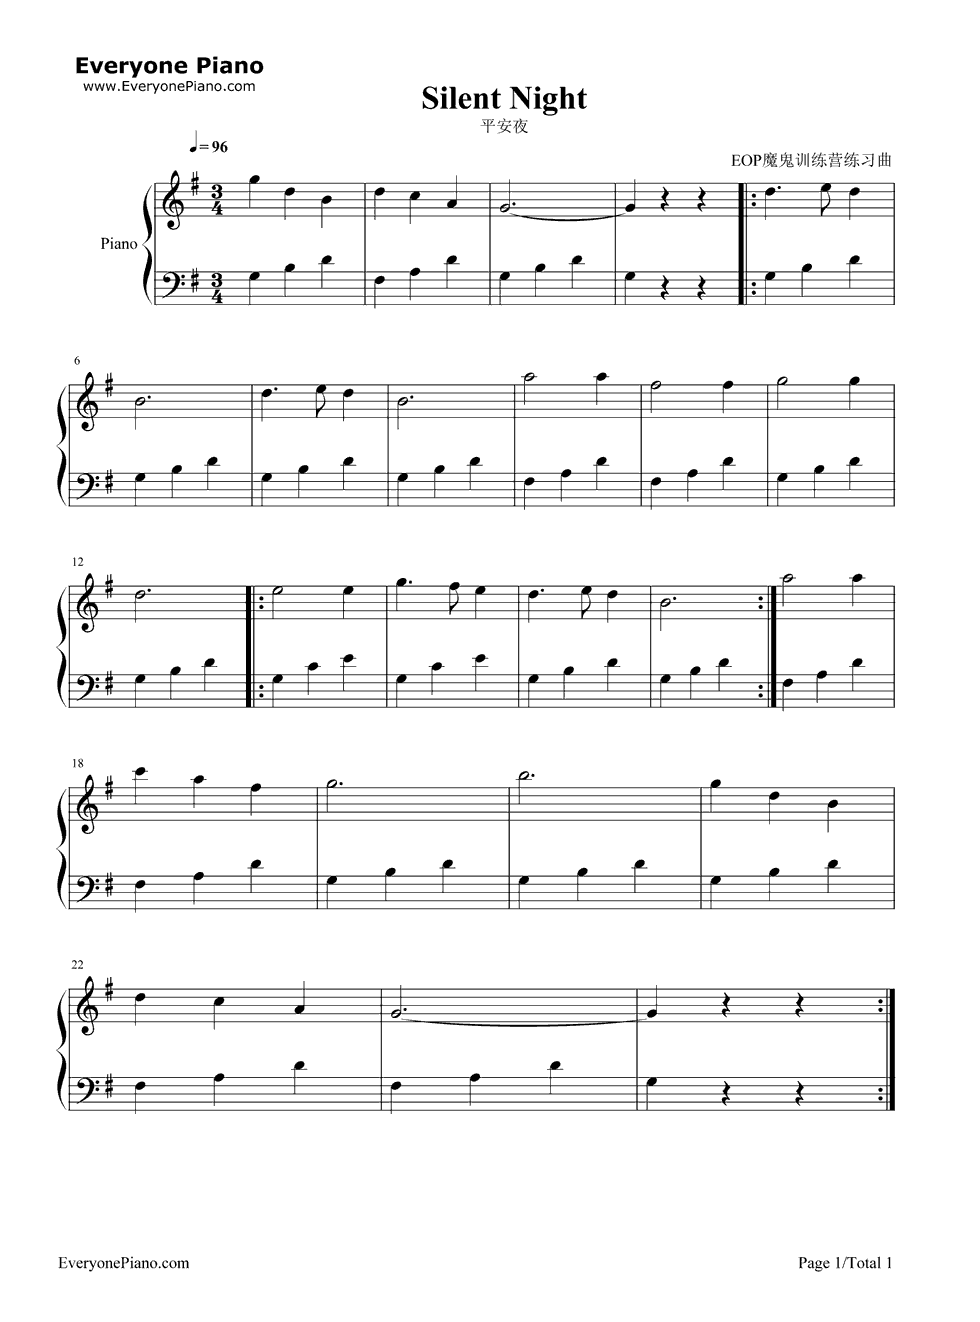 Silent Night Sheet Music Chords - silent night easy guitar tab guitarnick 61 free arrangements ...